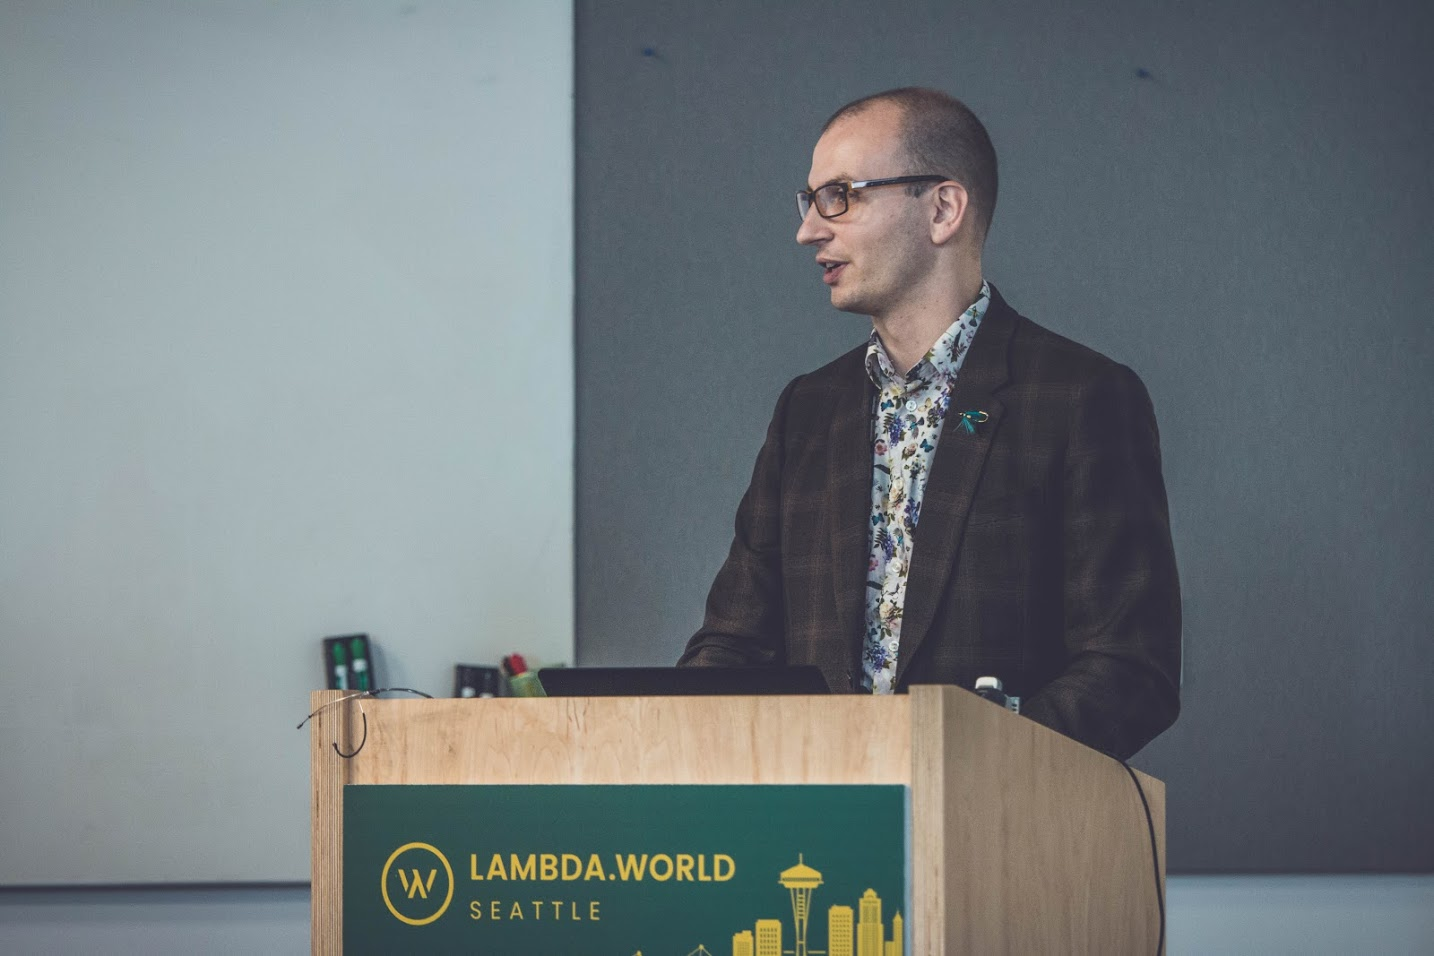 Jon Pretty at Lambda World Seattle 2018